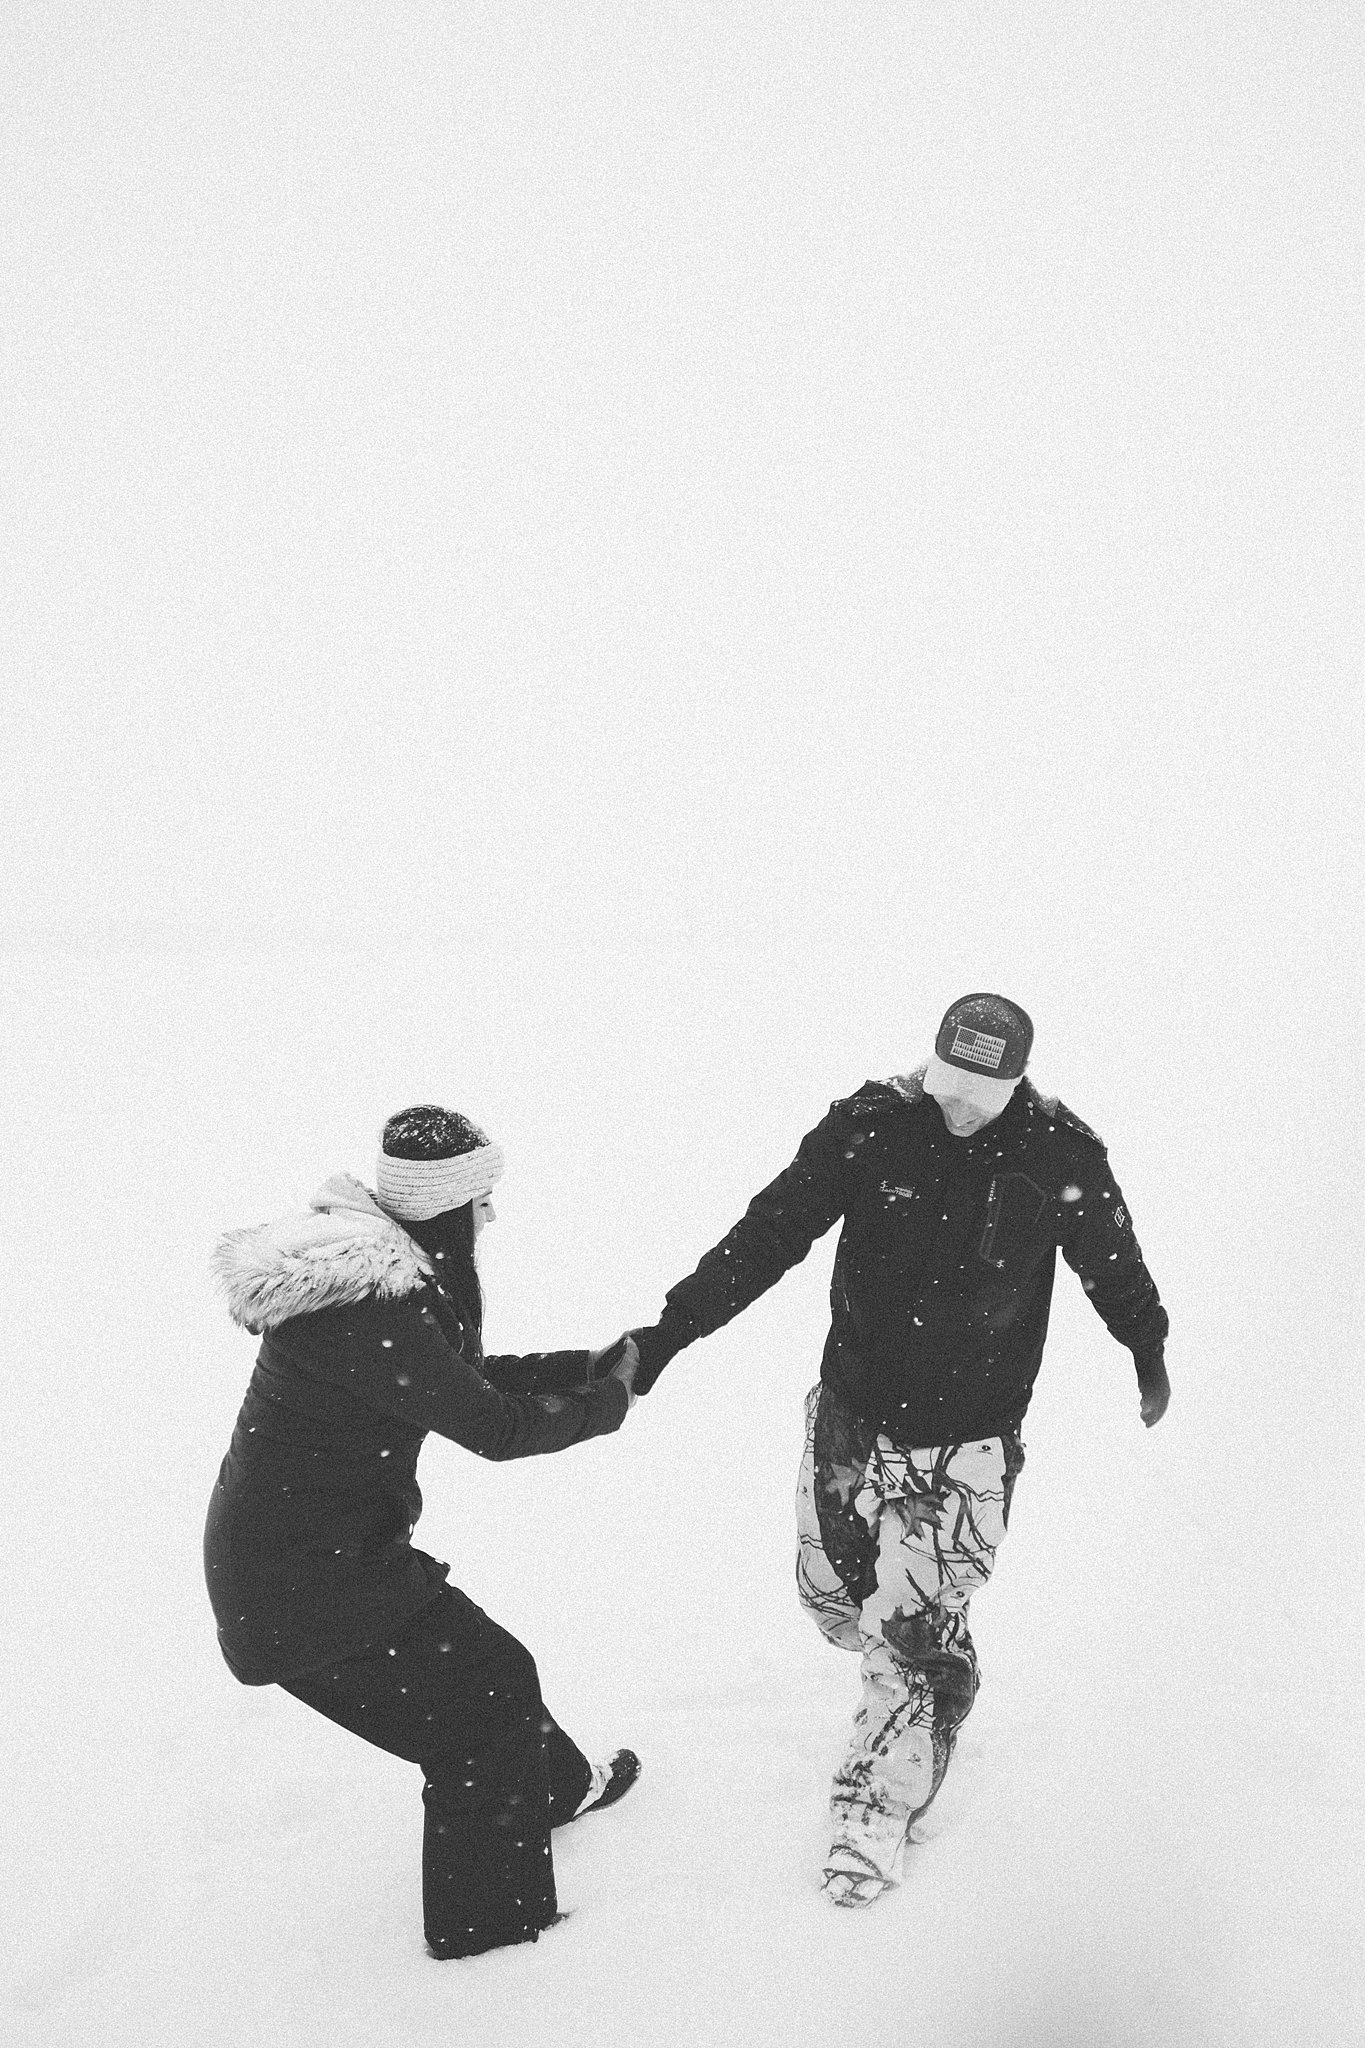 Copper Key Visuals Wisconsin Ice Fishing Engagement Session-16.jpg